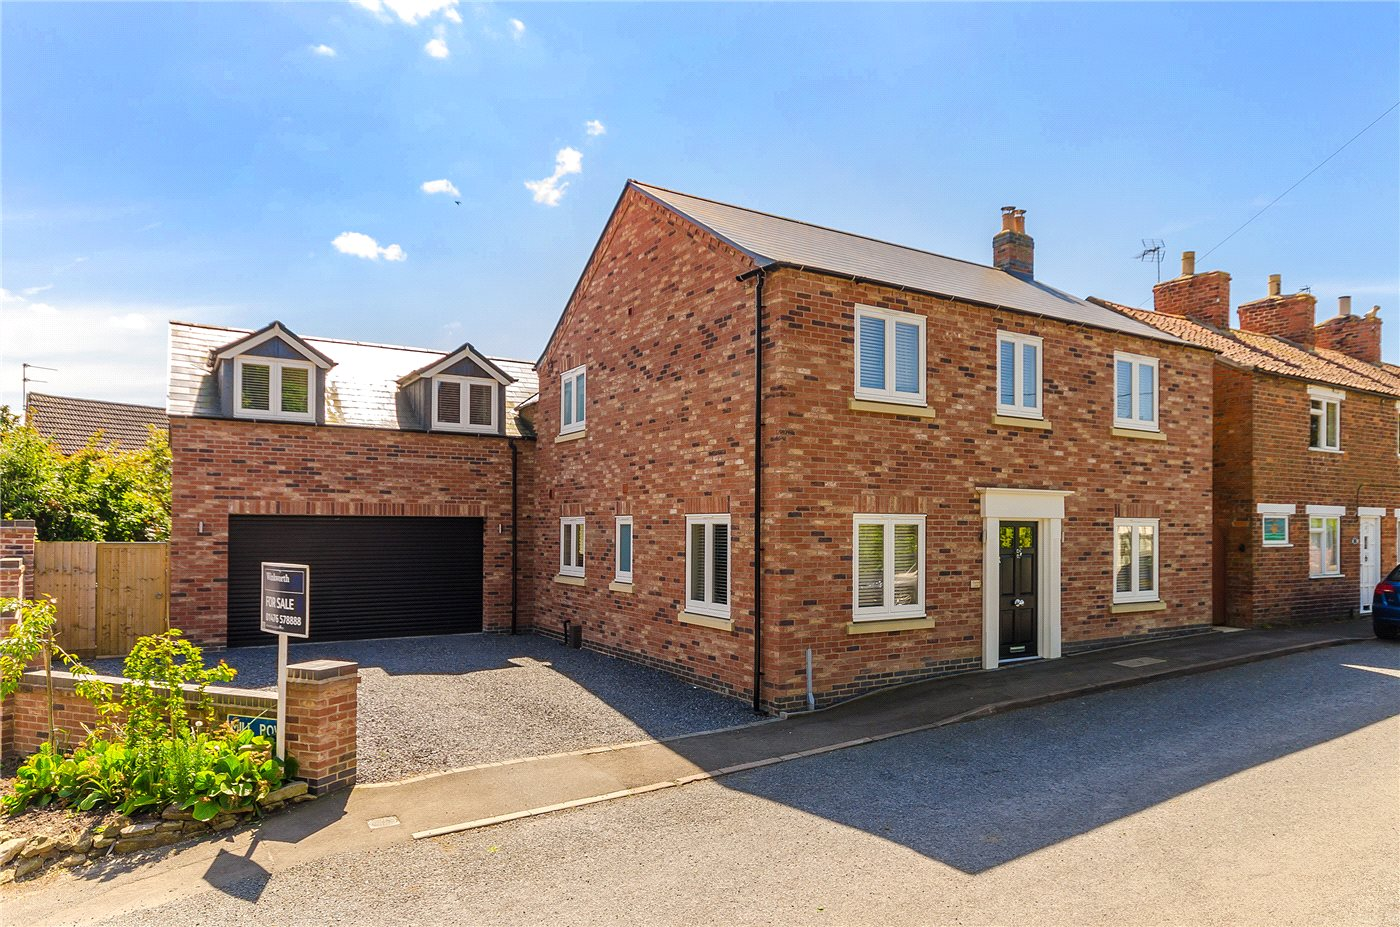 4 Bedrooms Detached House for rent in Casthorpe Road, Barrowby, Grantham, NG32